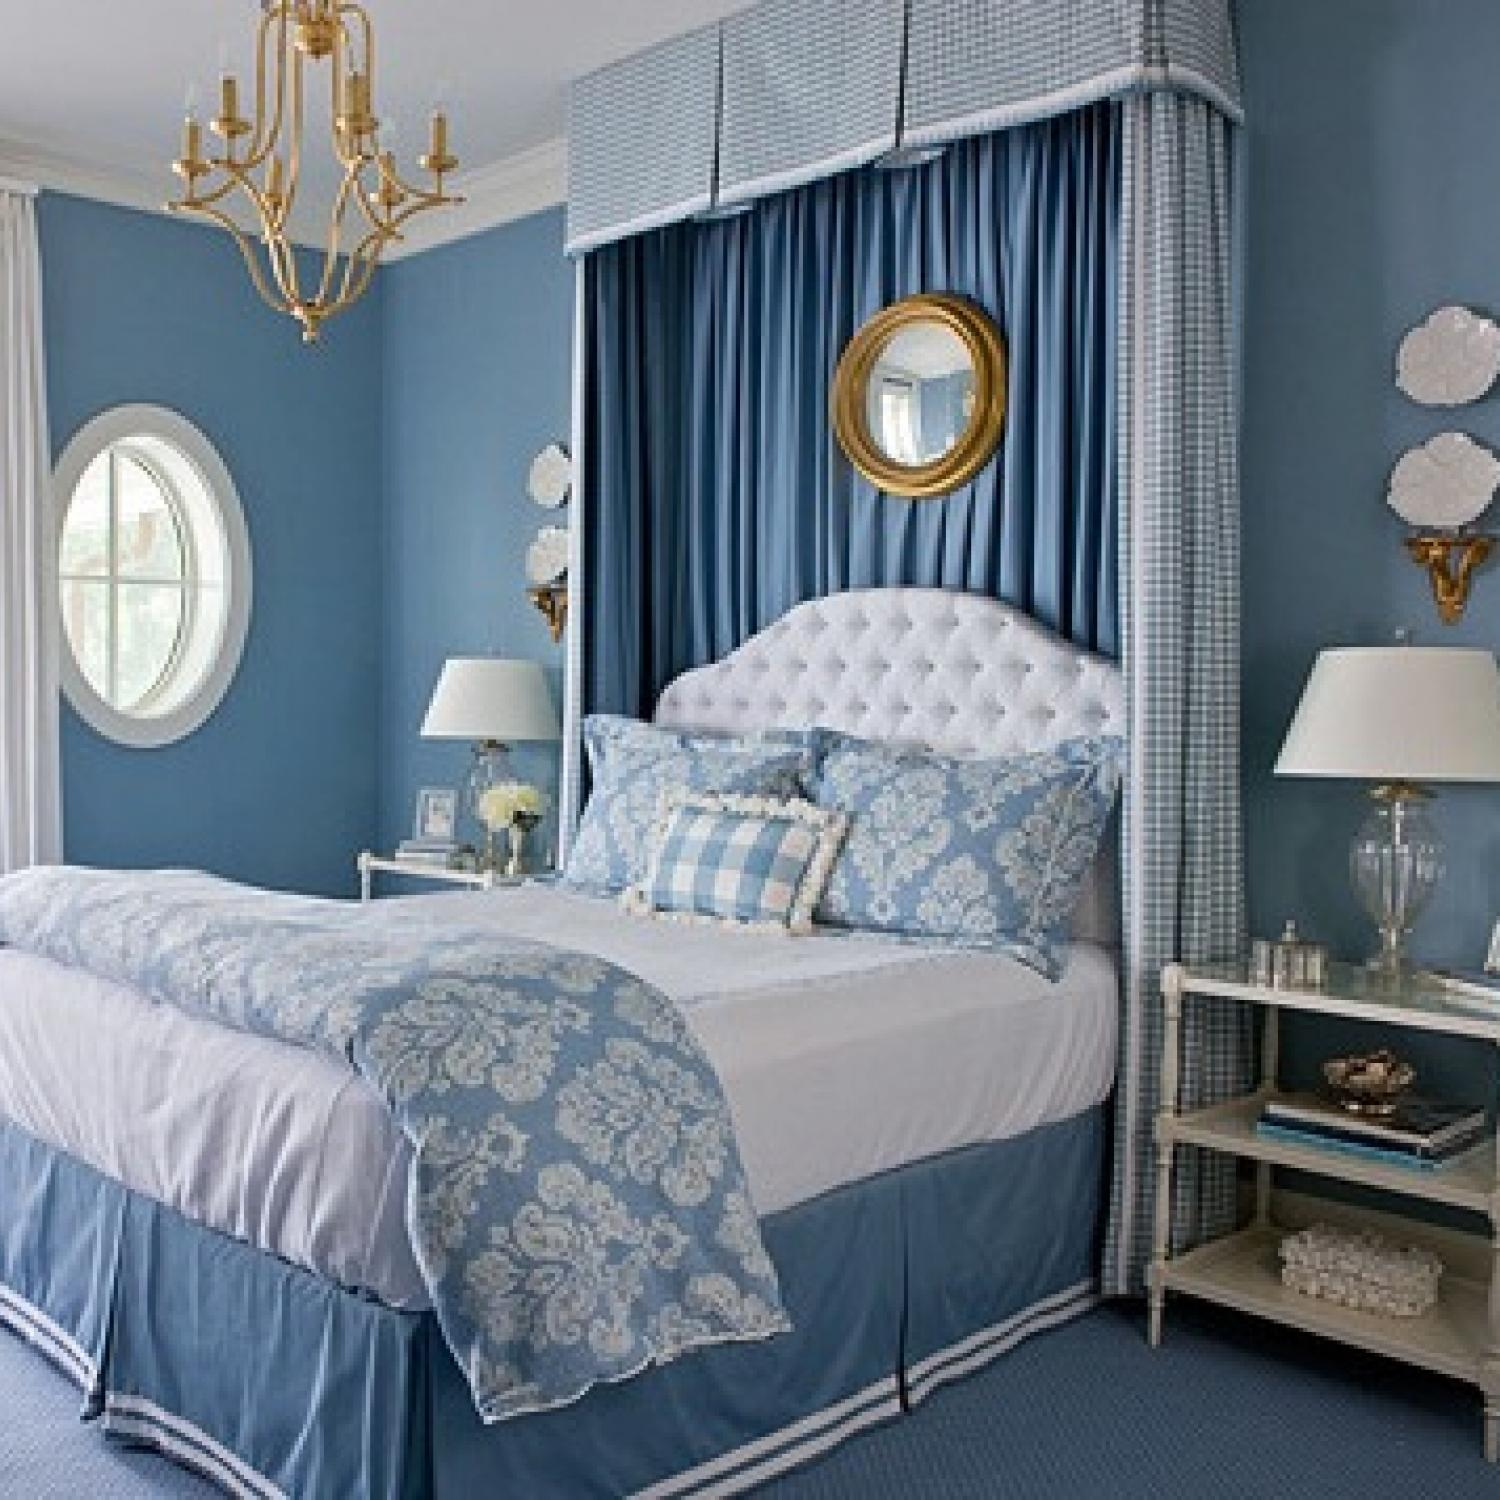 Beautiful White and Blue Bedroom Ideas